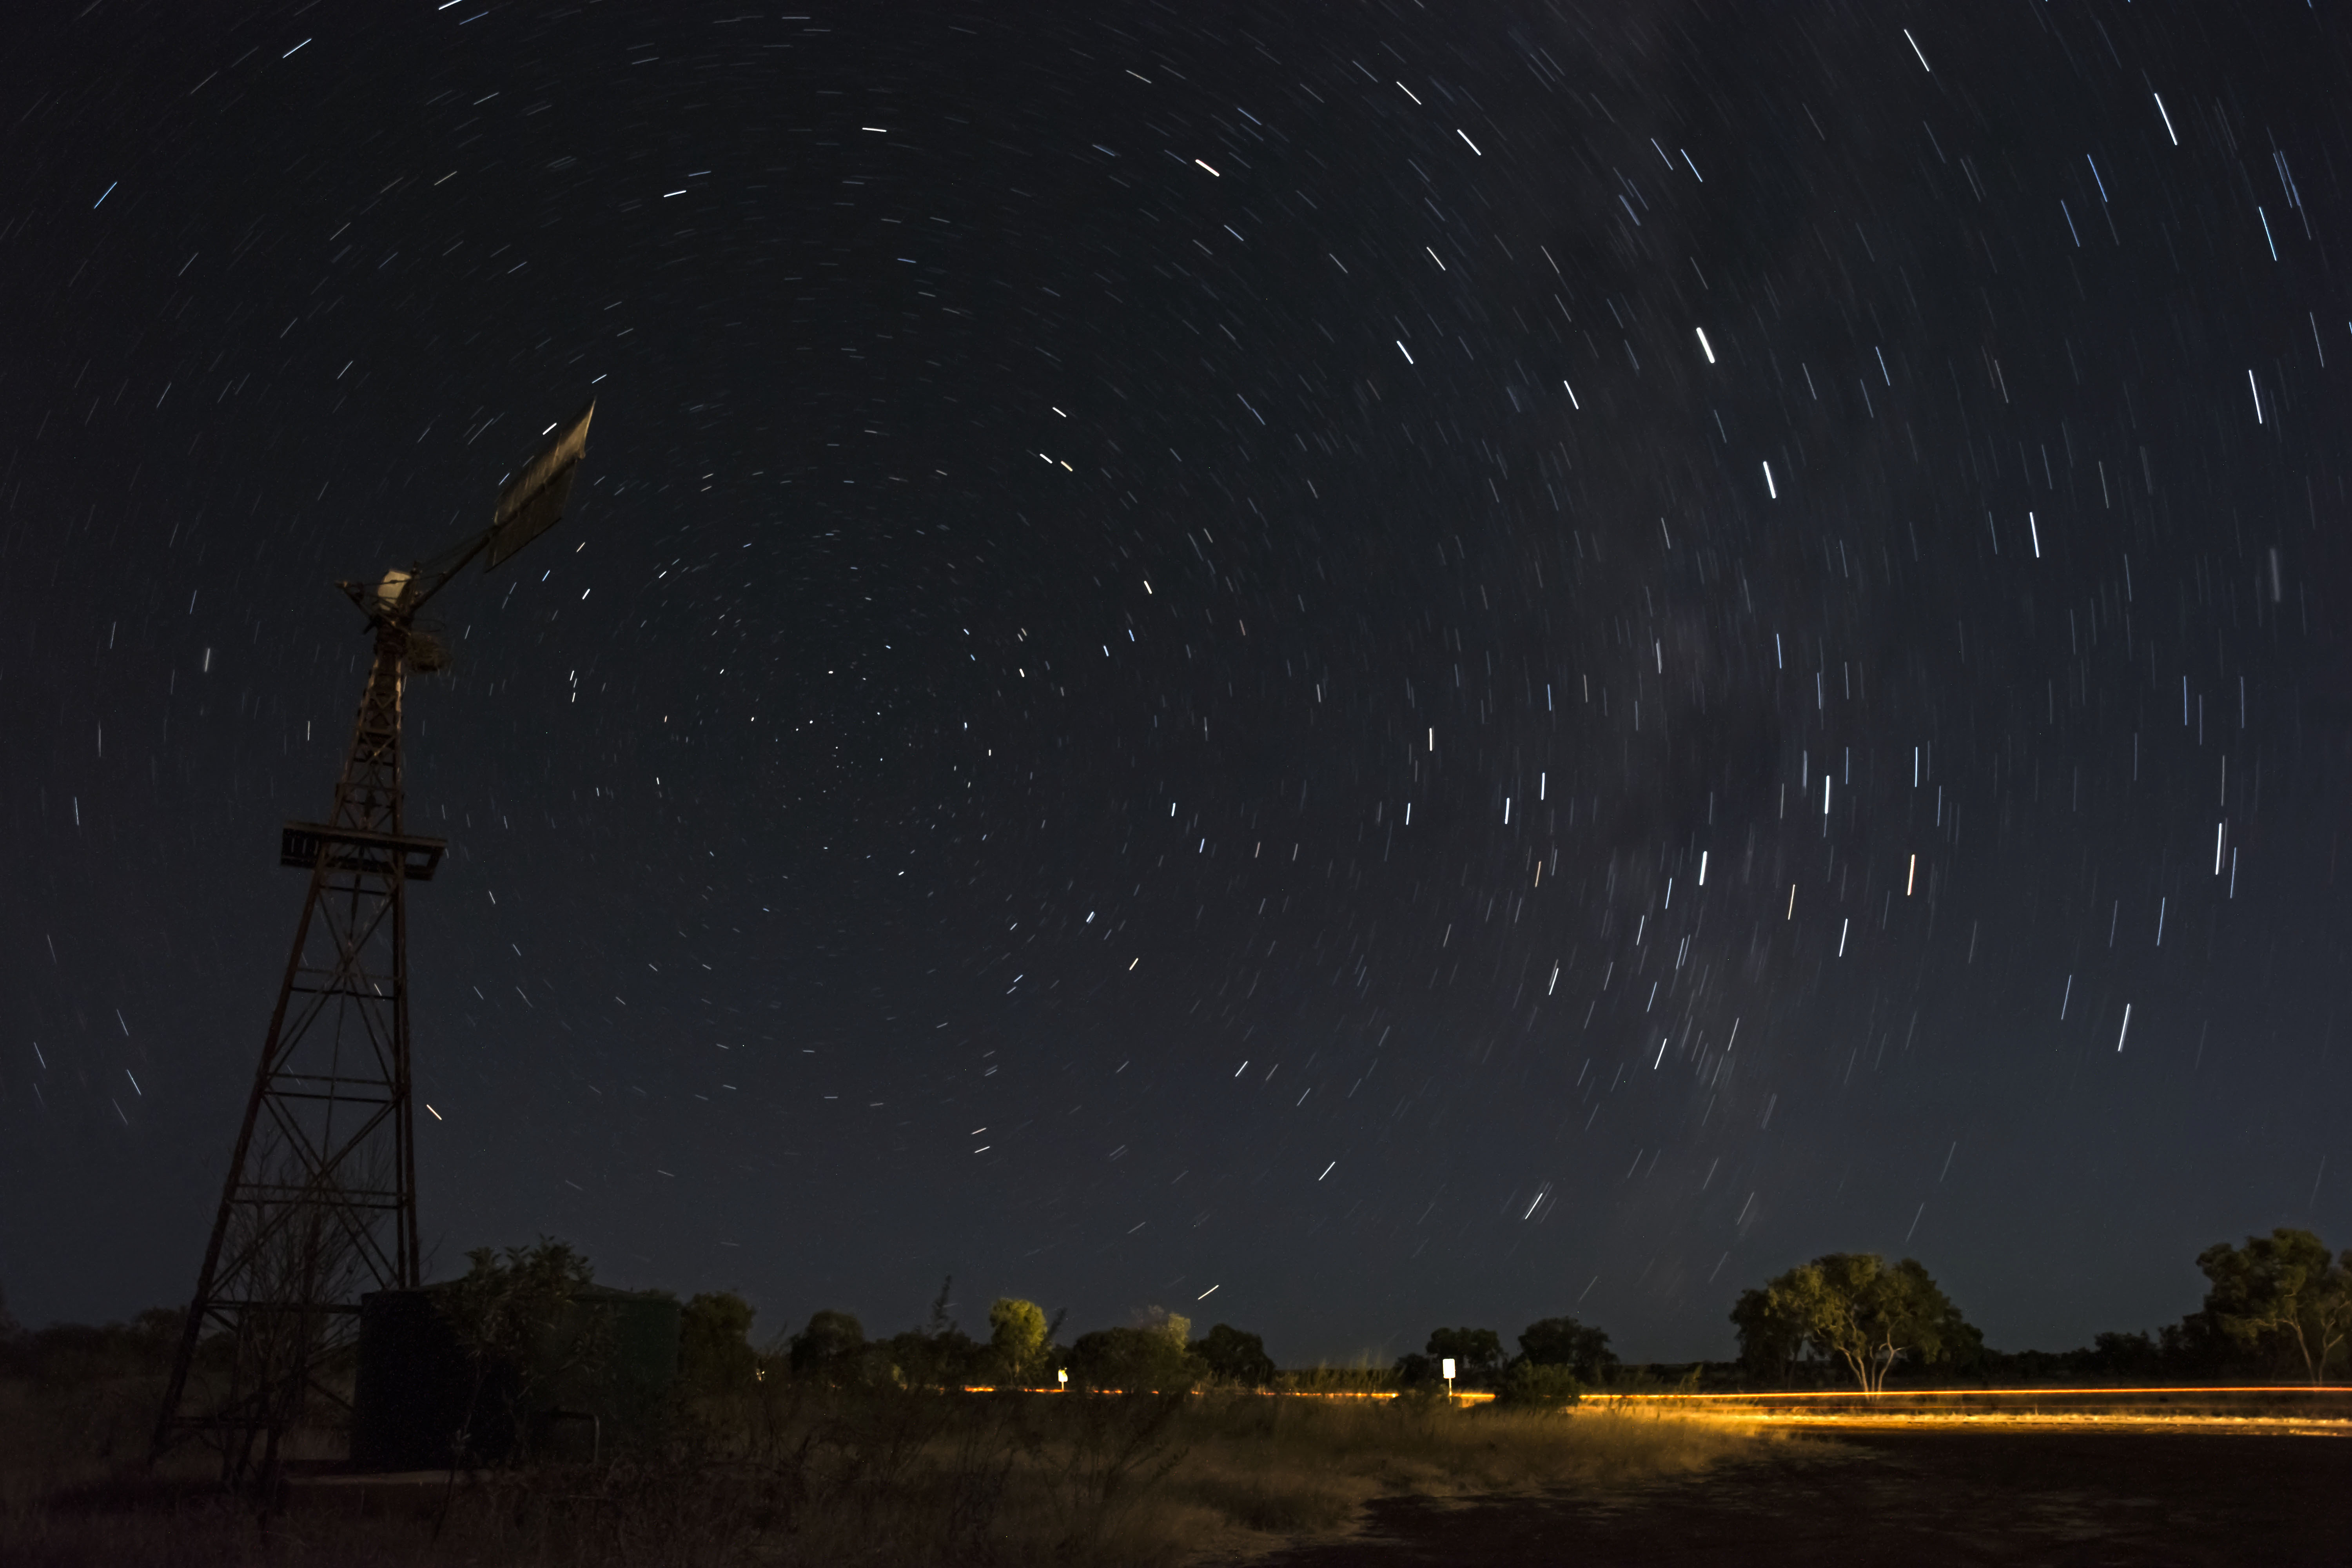 Night sky with a windmill